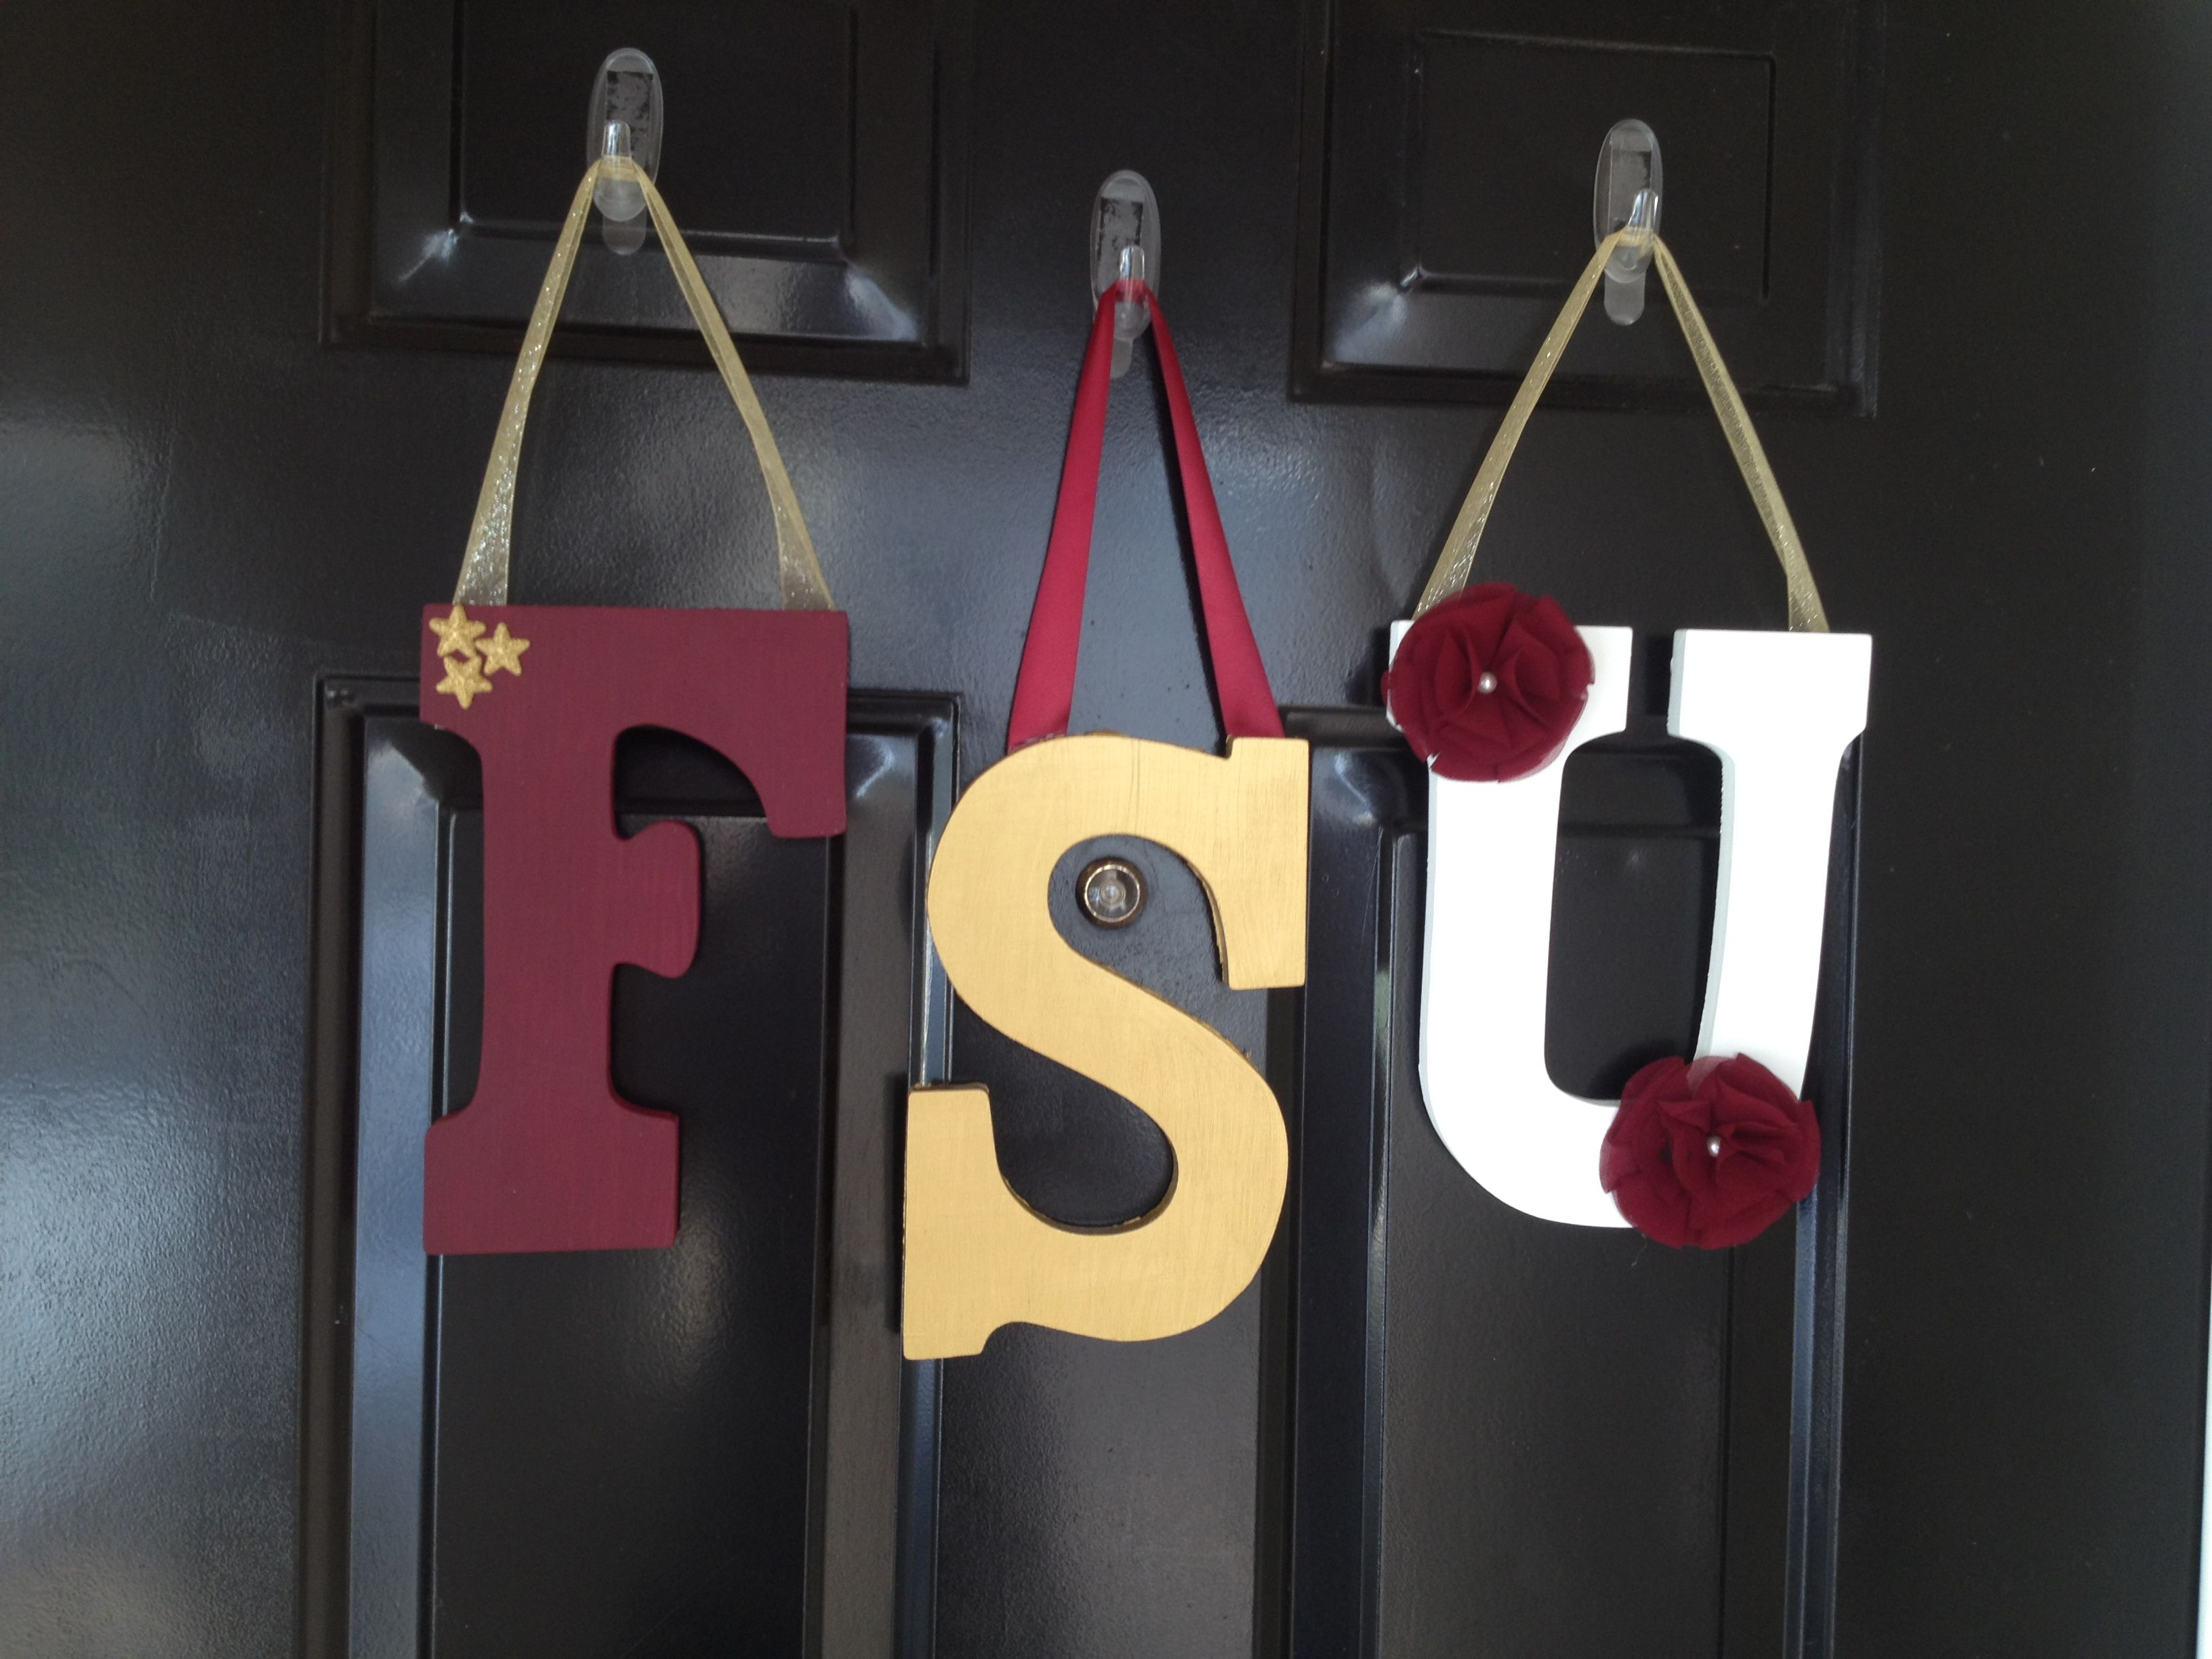 Fsu Decor For Fall Just A Few Supplies From Michaels Super Easy